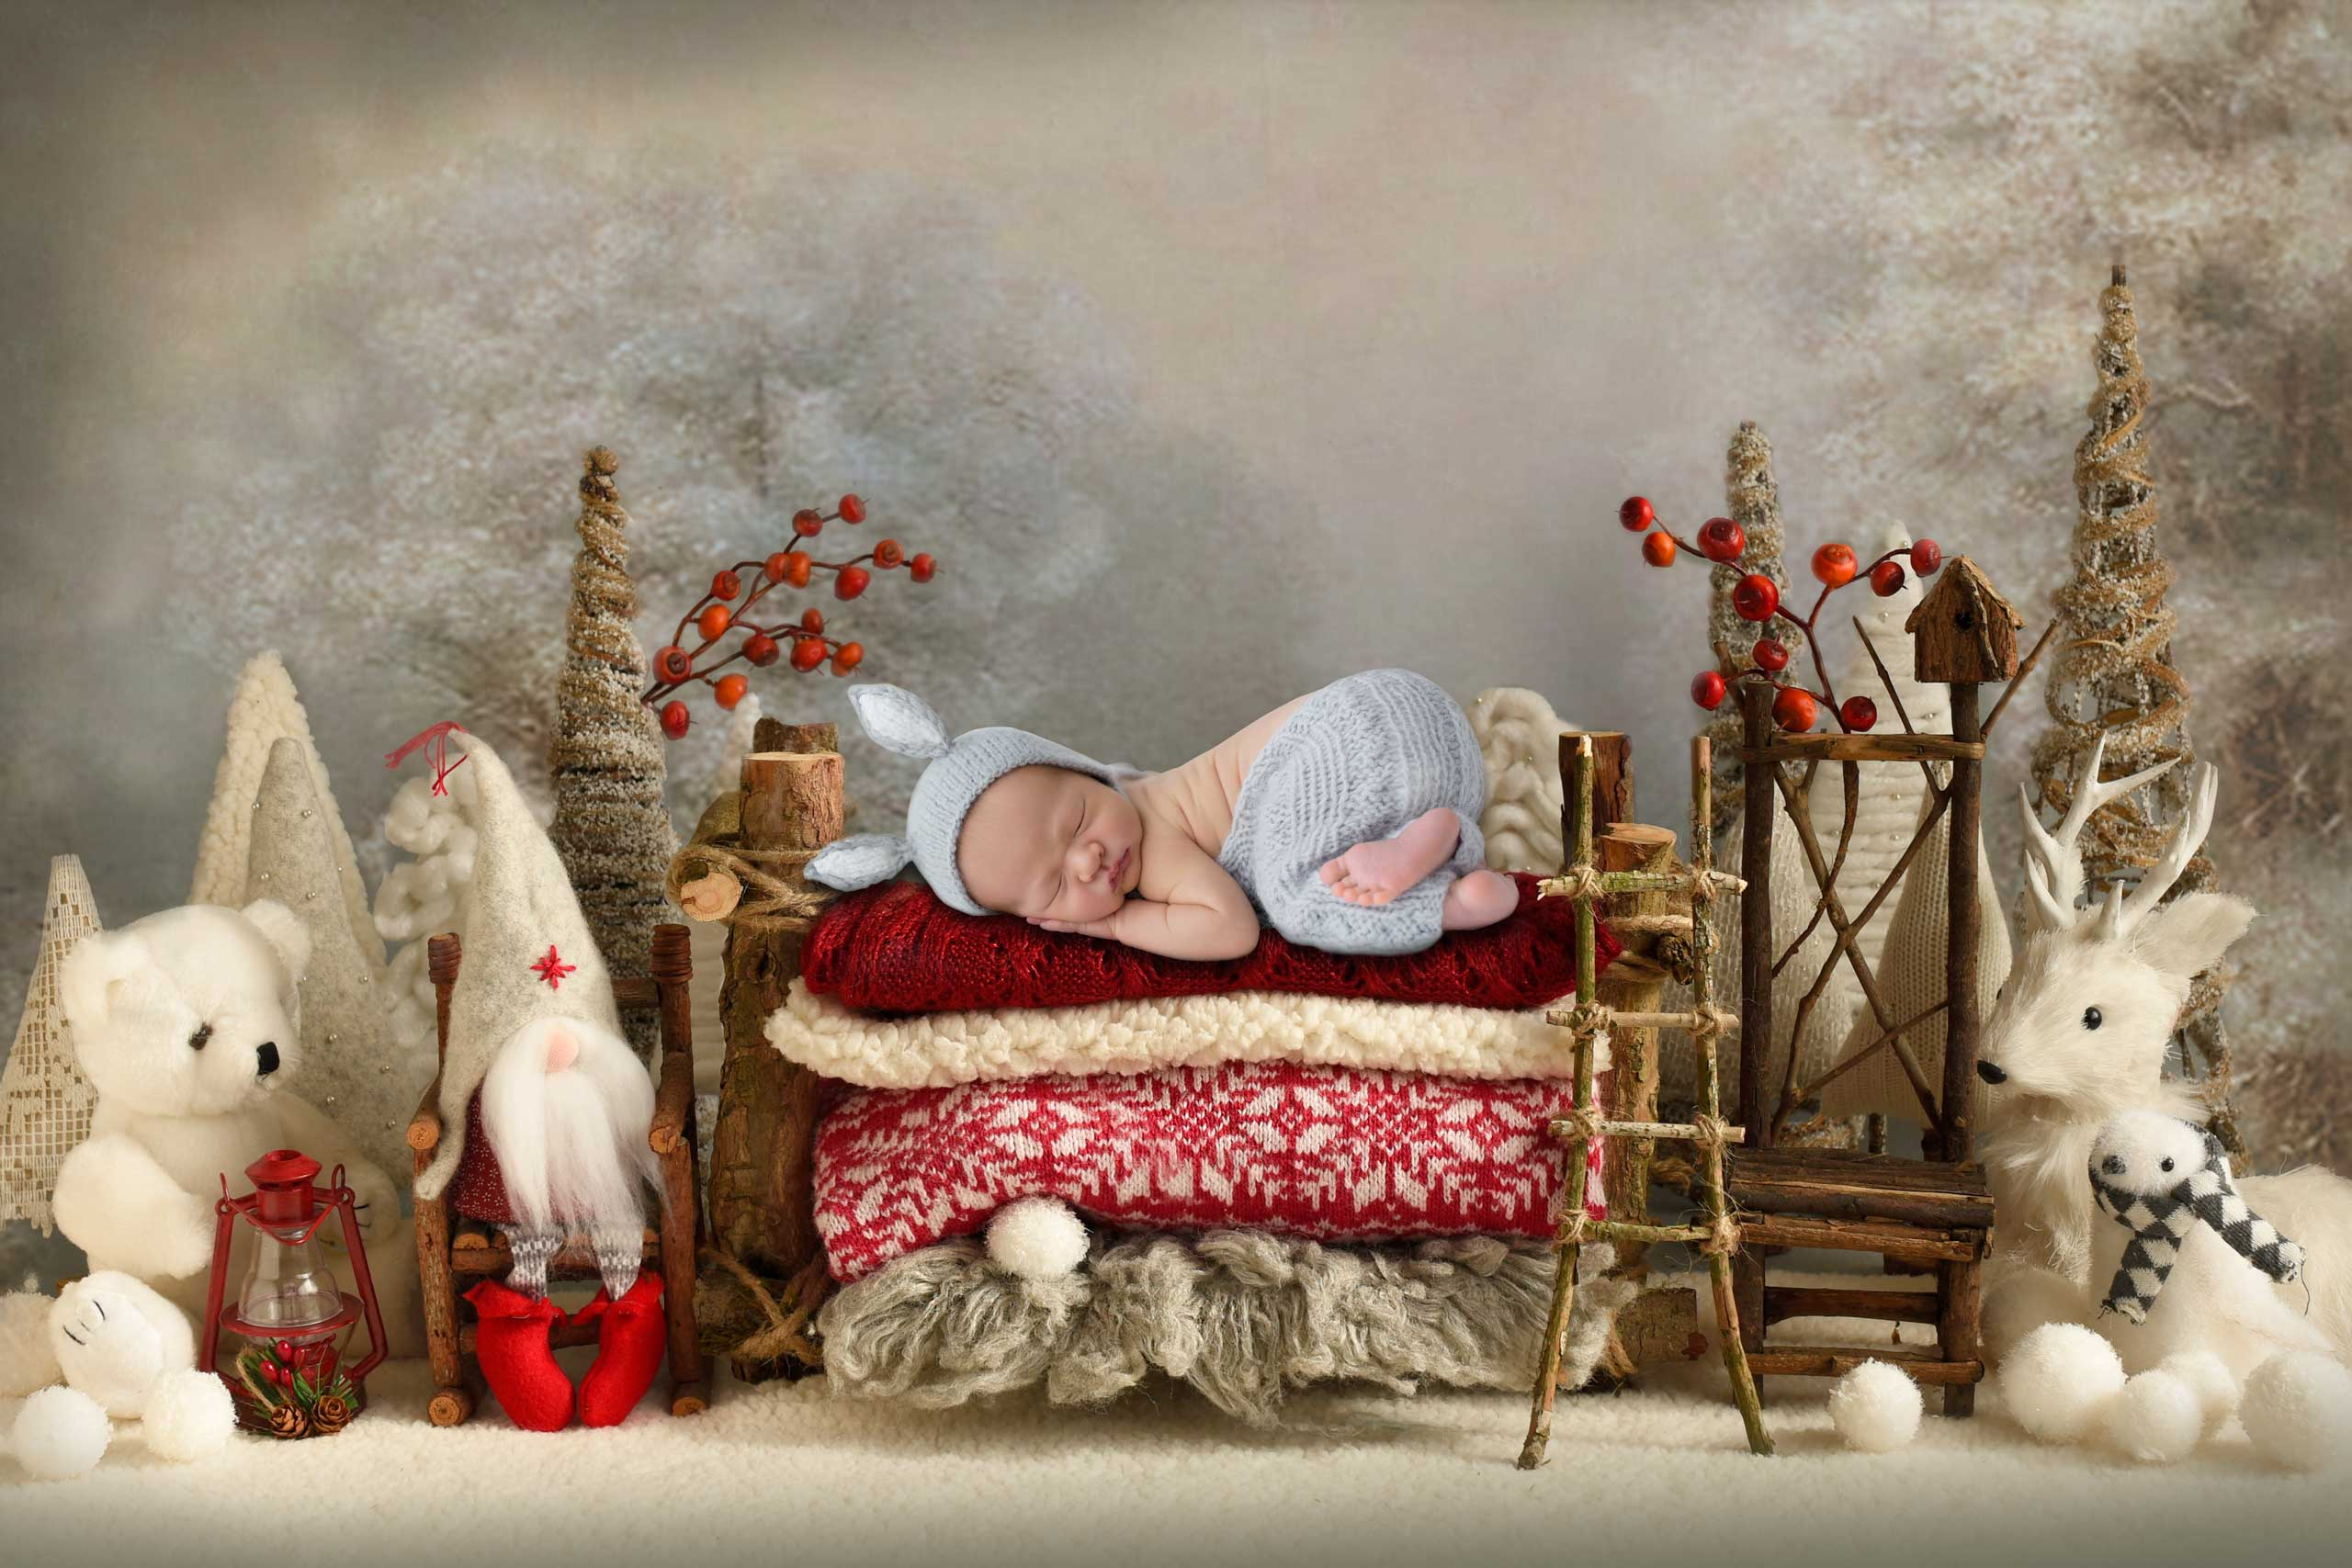 Christmas baby newborn photograph taken in Los Angeles by Ramina Magid Photography